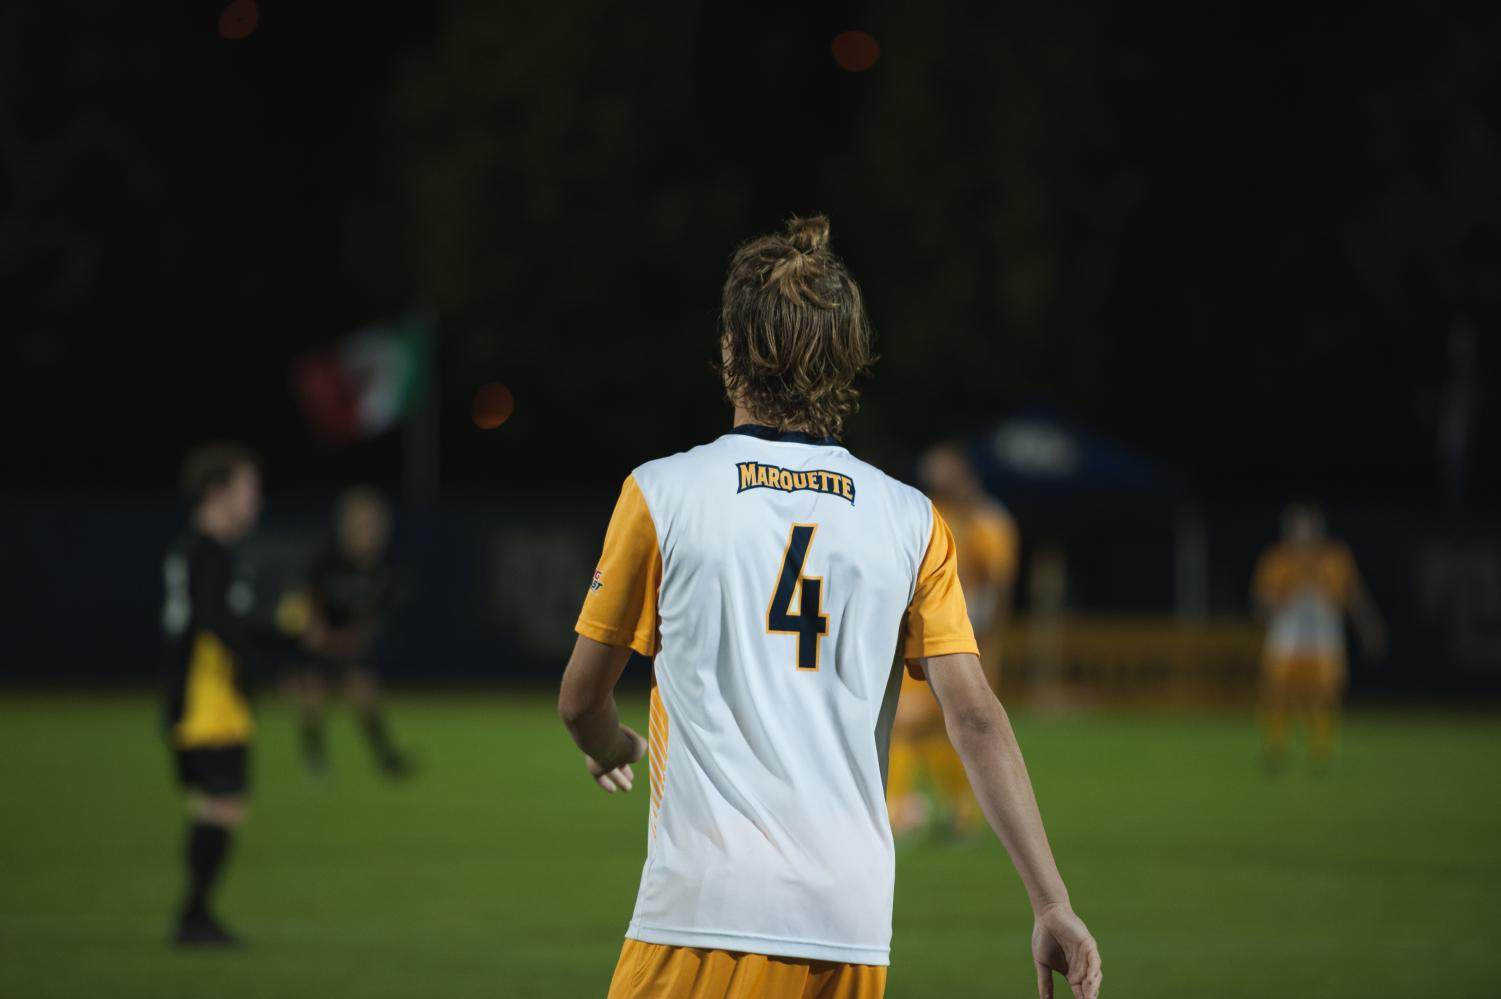 Attacker Toby Howell transferred from Marquette University to Brown at the end of the 2016 season. (Wire Stock Photo)